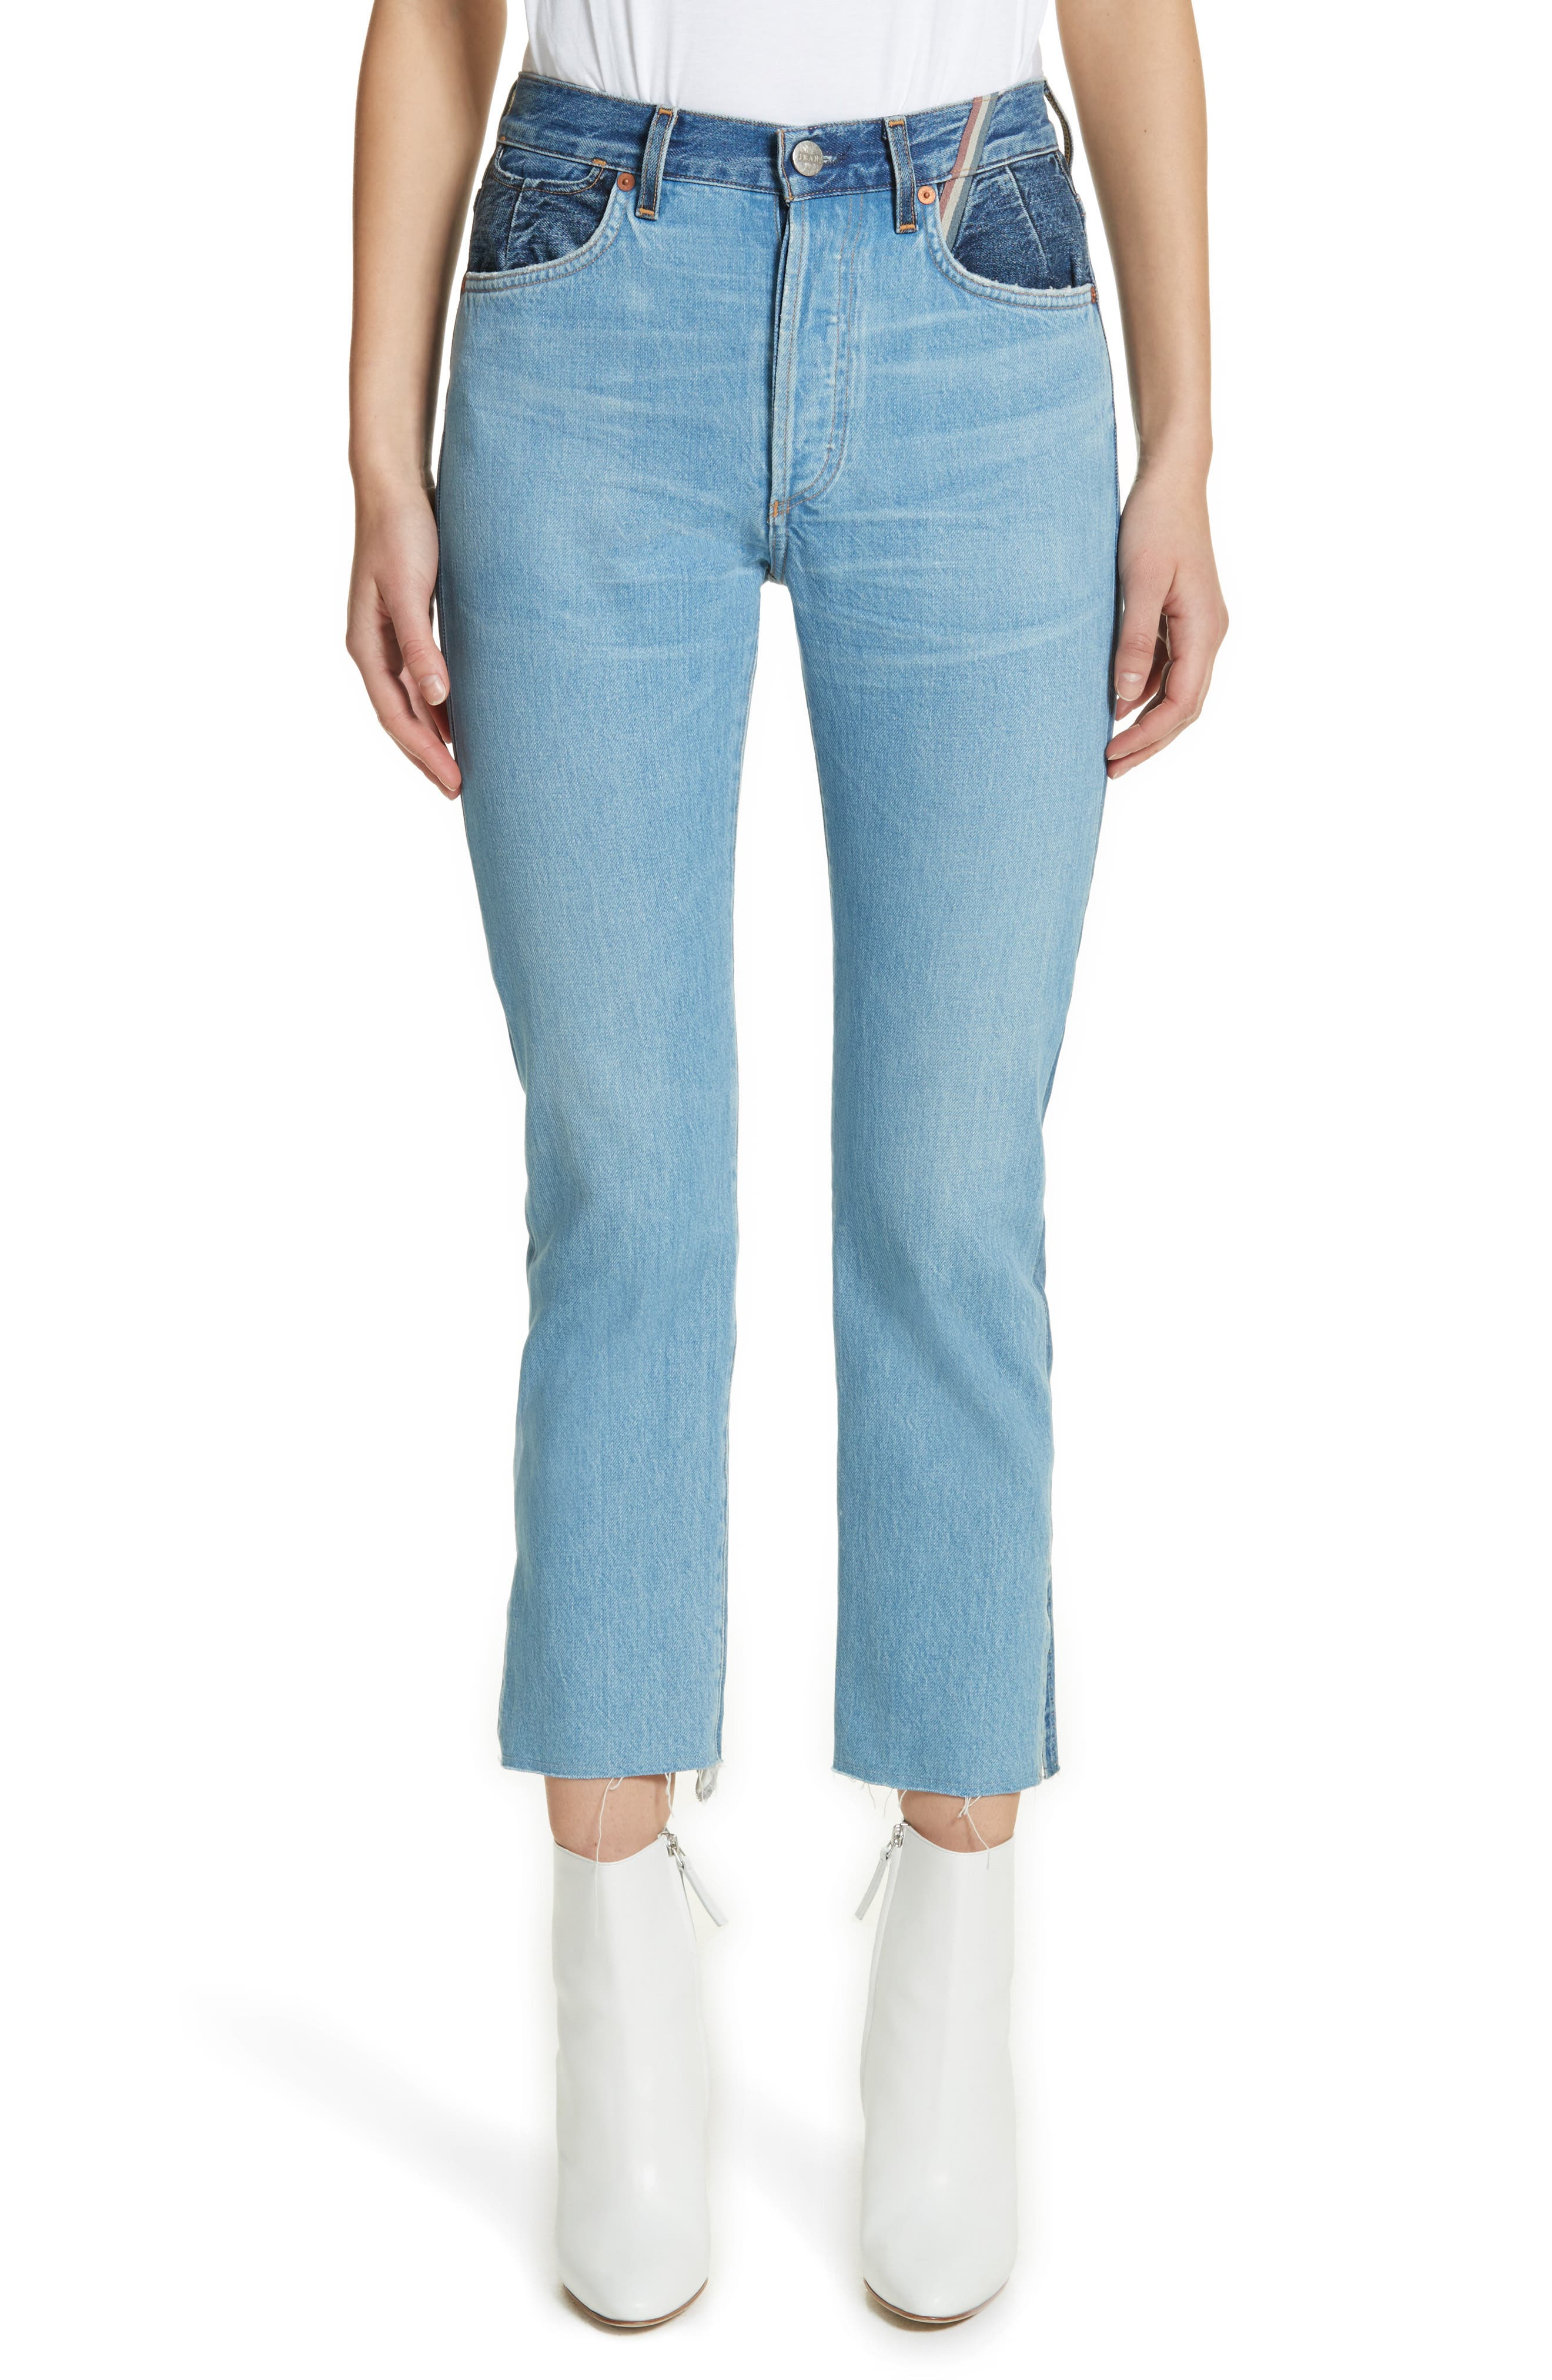 Hunter High Rise Straight Leg Crop Jeans,                             Main thumbnail 1, color,                             Jagger